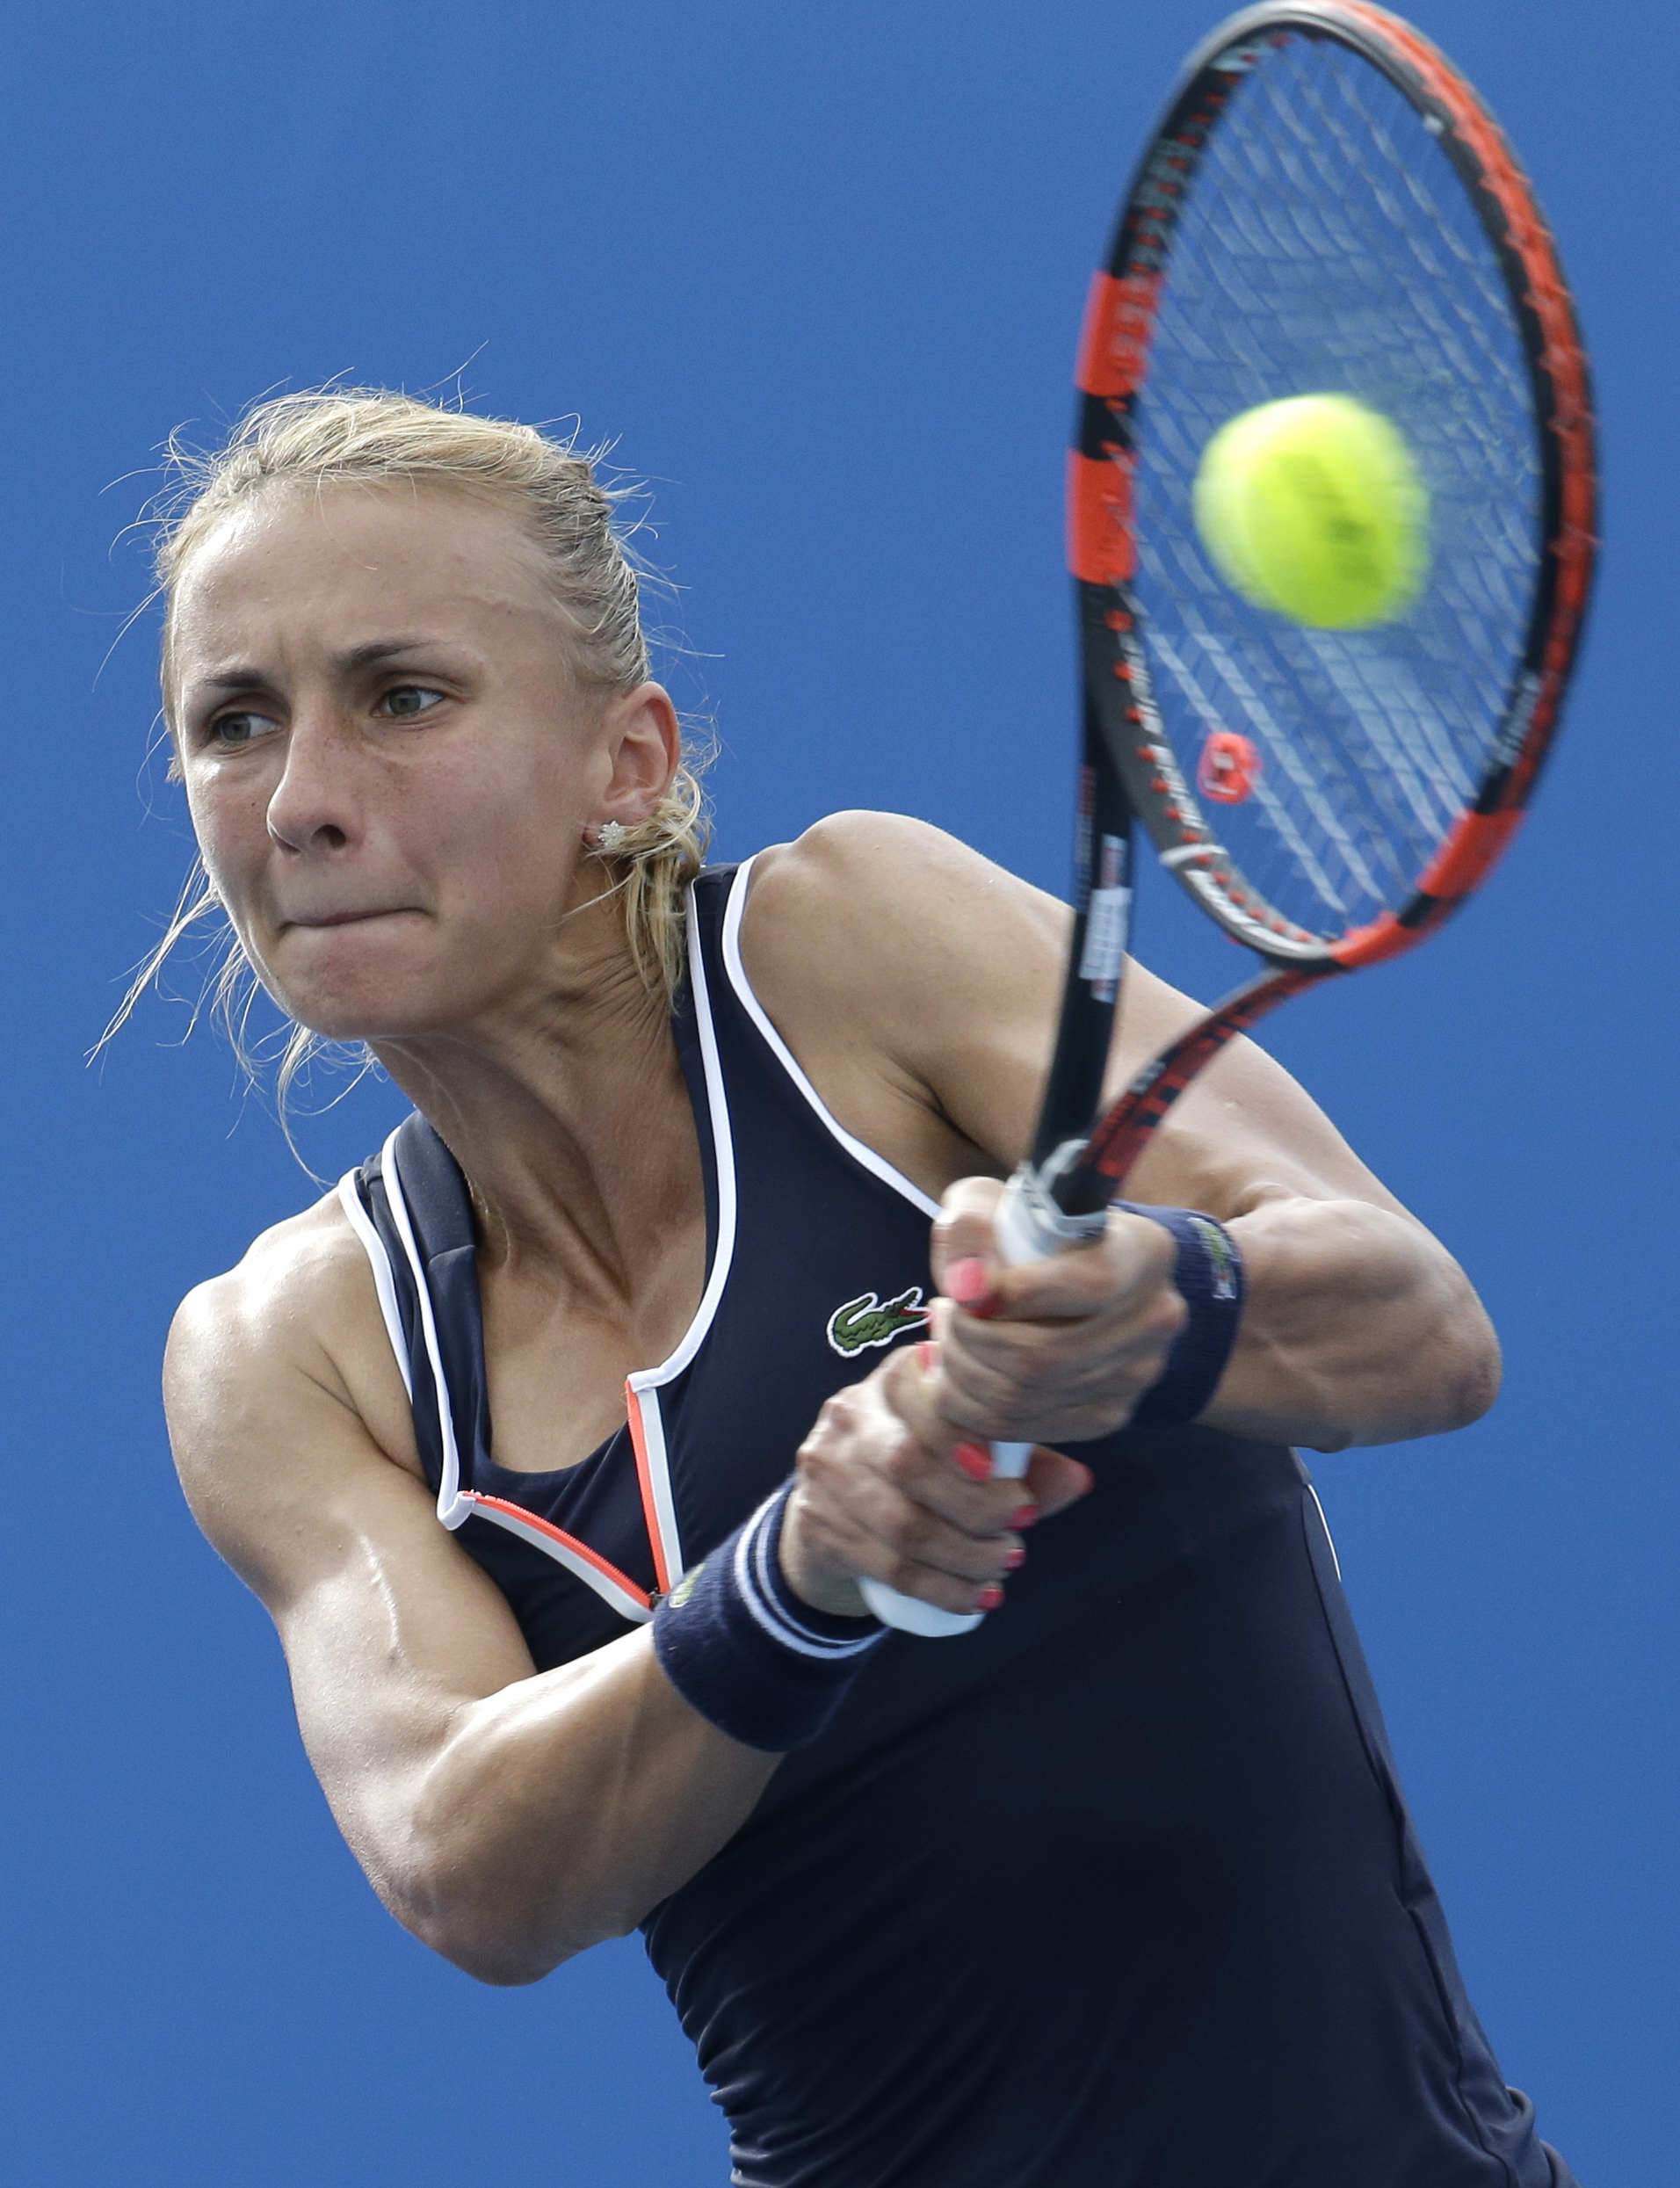 Lesia Tsurenko of Ukraine makes a backhand return to Madison Keys of the U.S. during their first round match at the Australian Open tennis championship in Melbourne, Australia, Tuesday, Jan. 20, 2015. (AP Photo/Lee Jin-man)